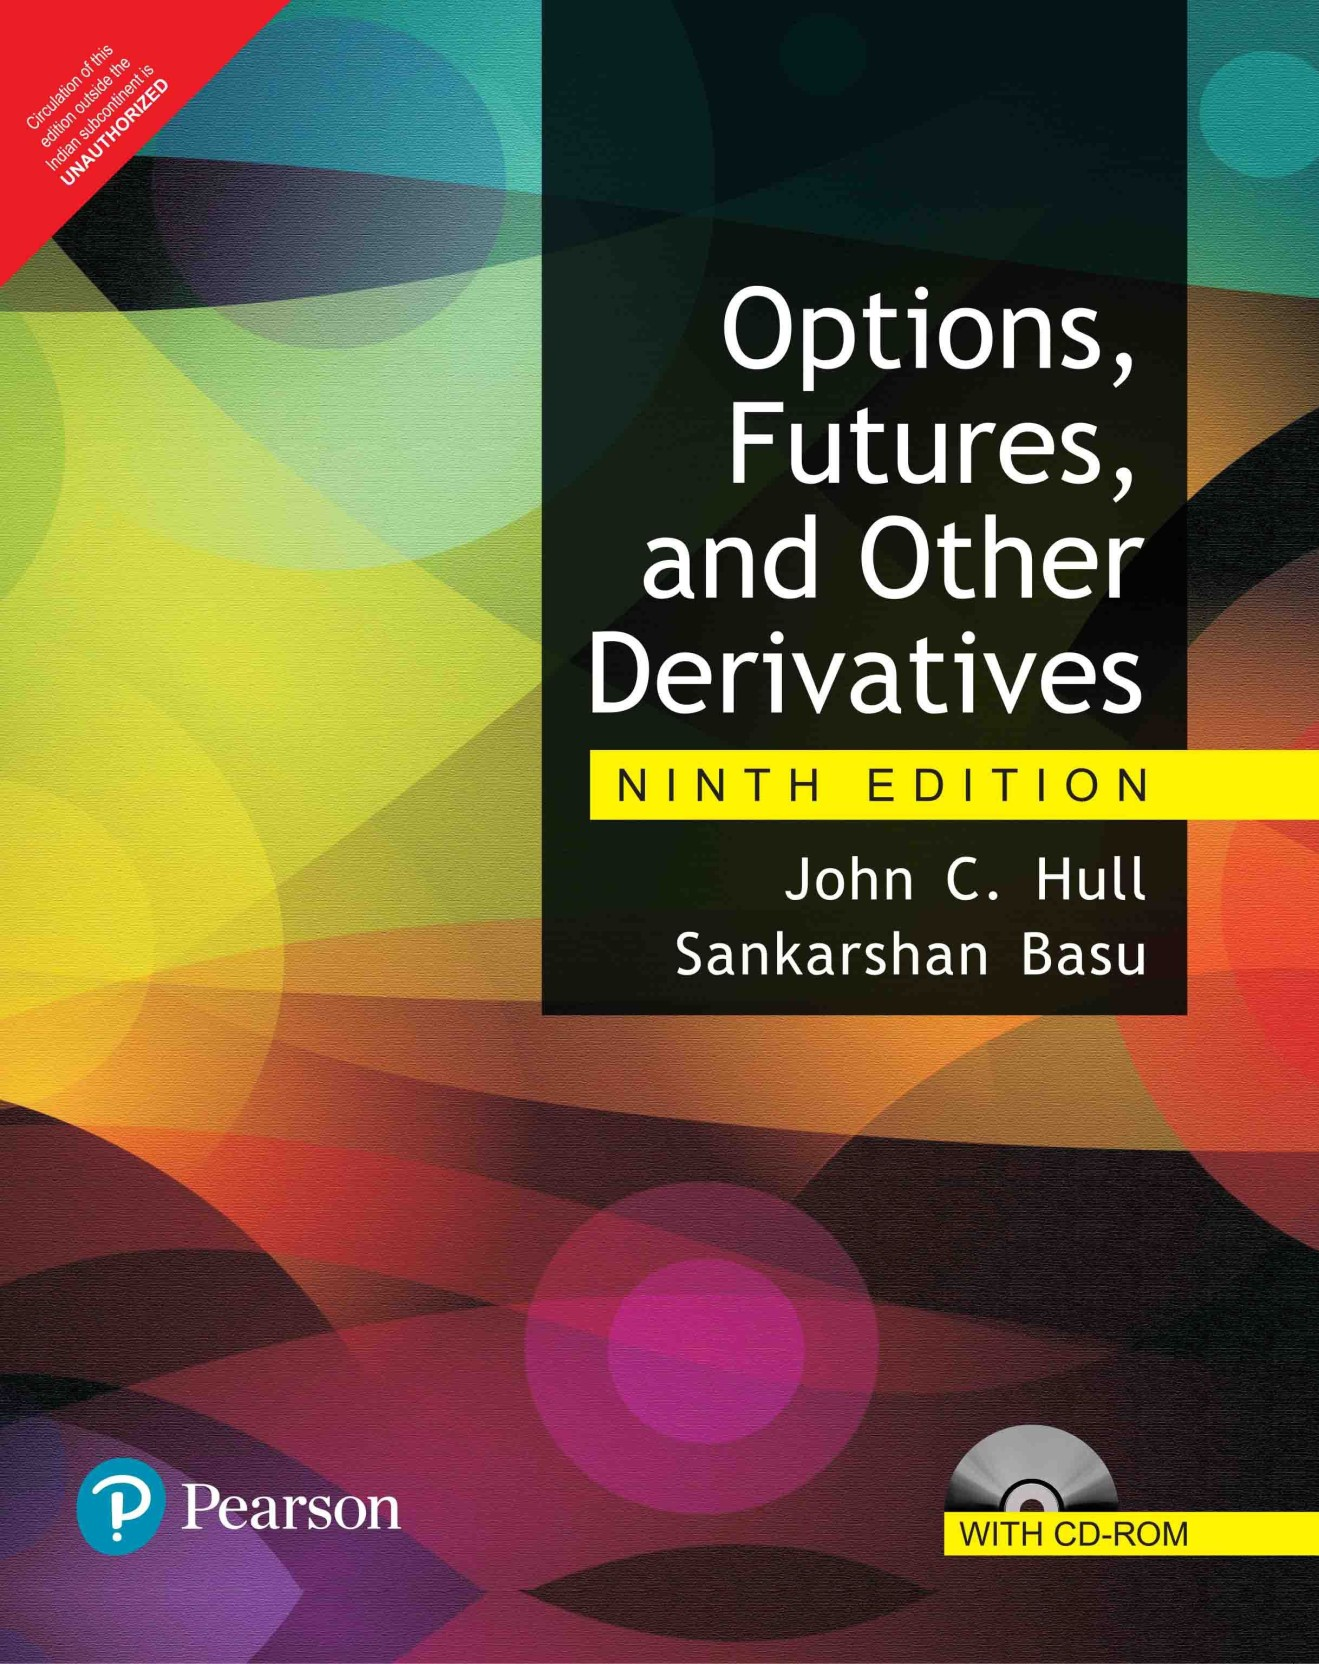 Options, Futures and Other Derivatives Tenth Edition. ADD TO CART